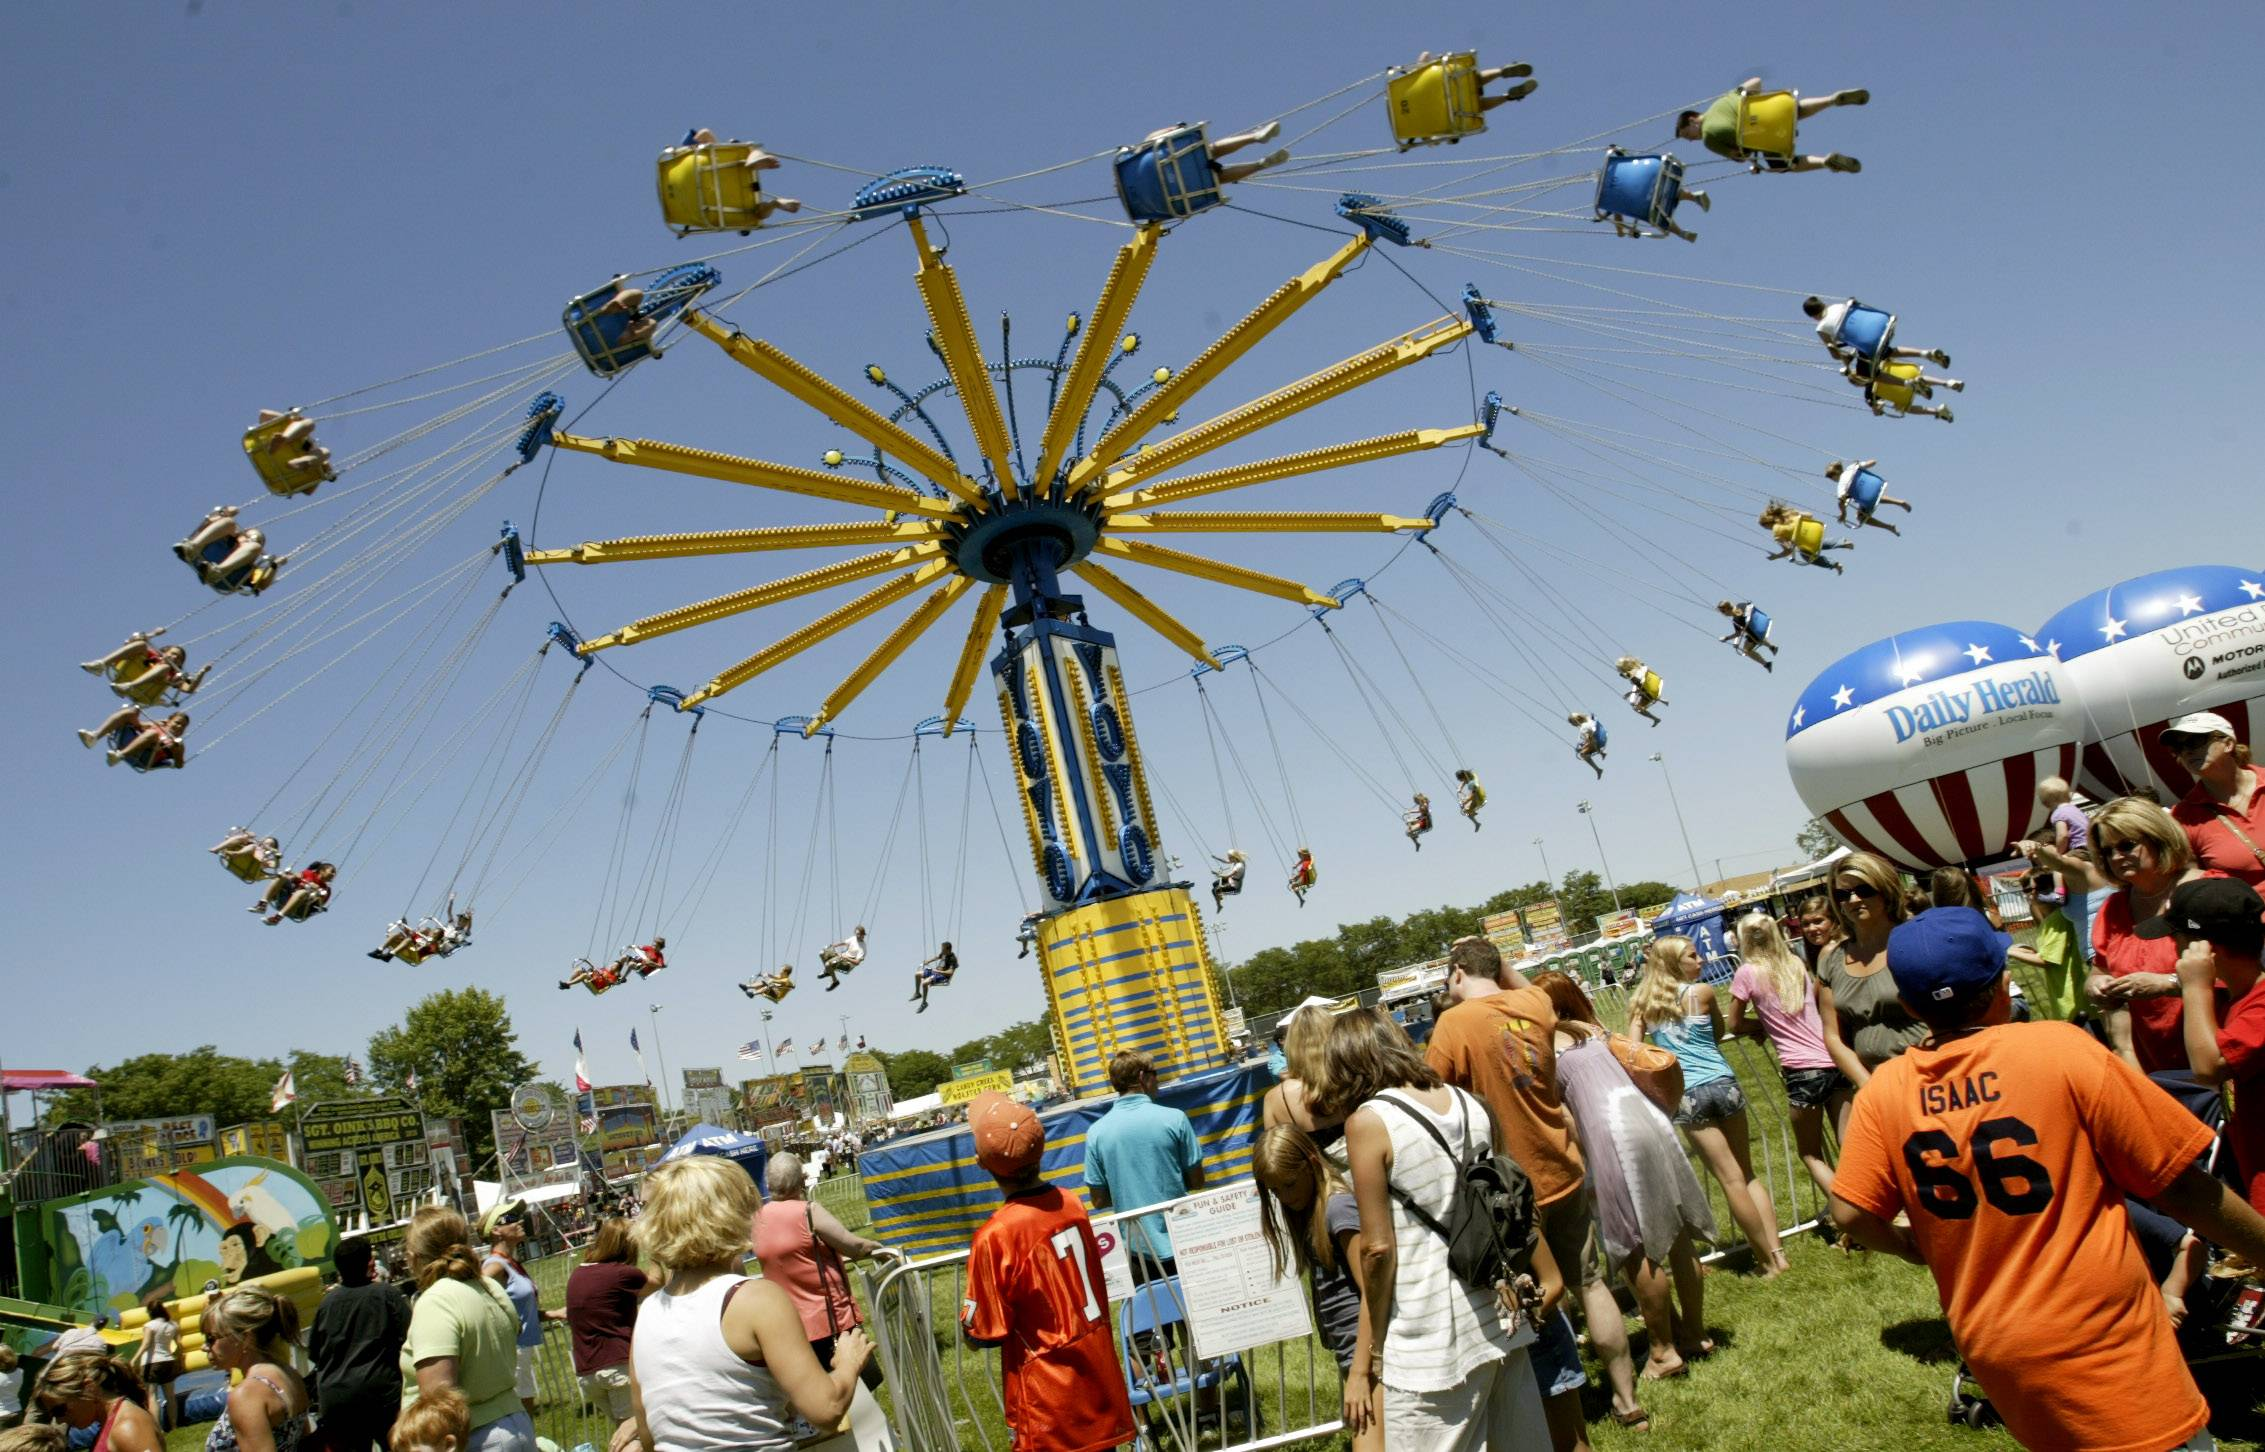 A carnival always has been part of Naperville's Ribfest, which is planning for its 28th year, but the array of rides has grown over the years.